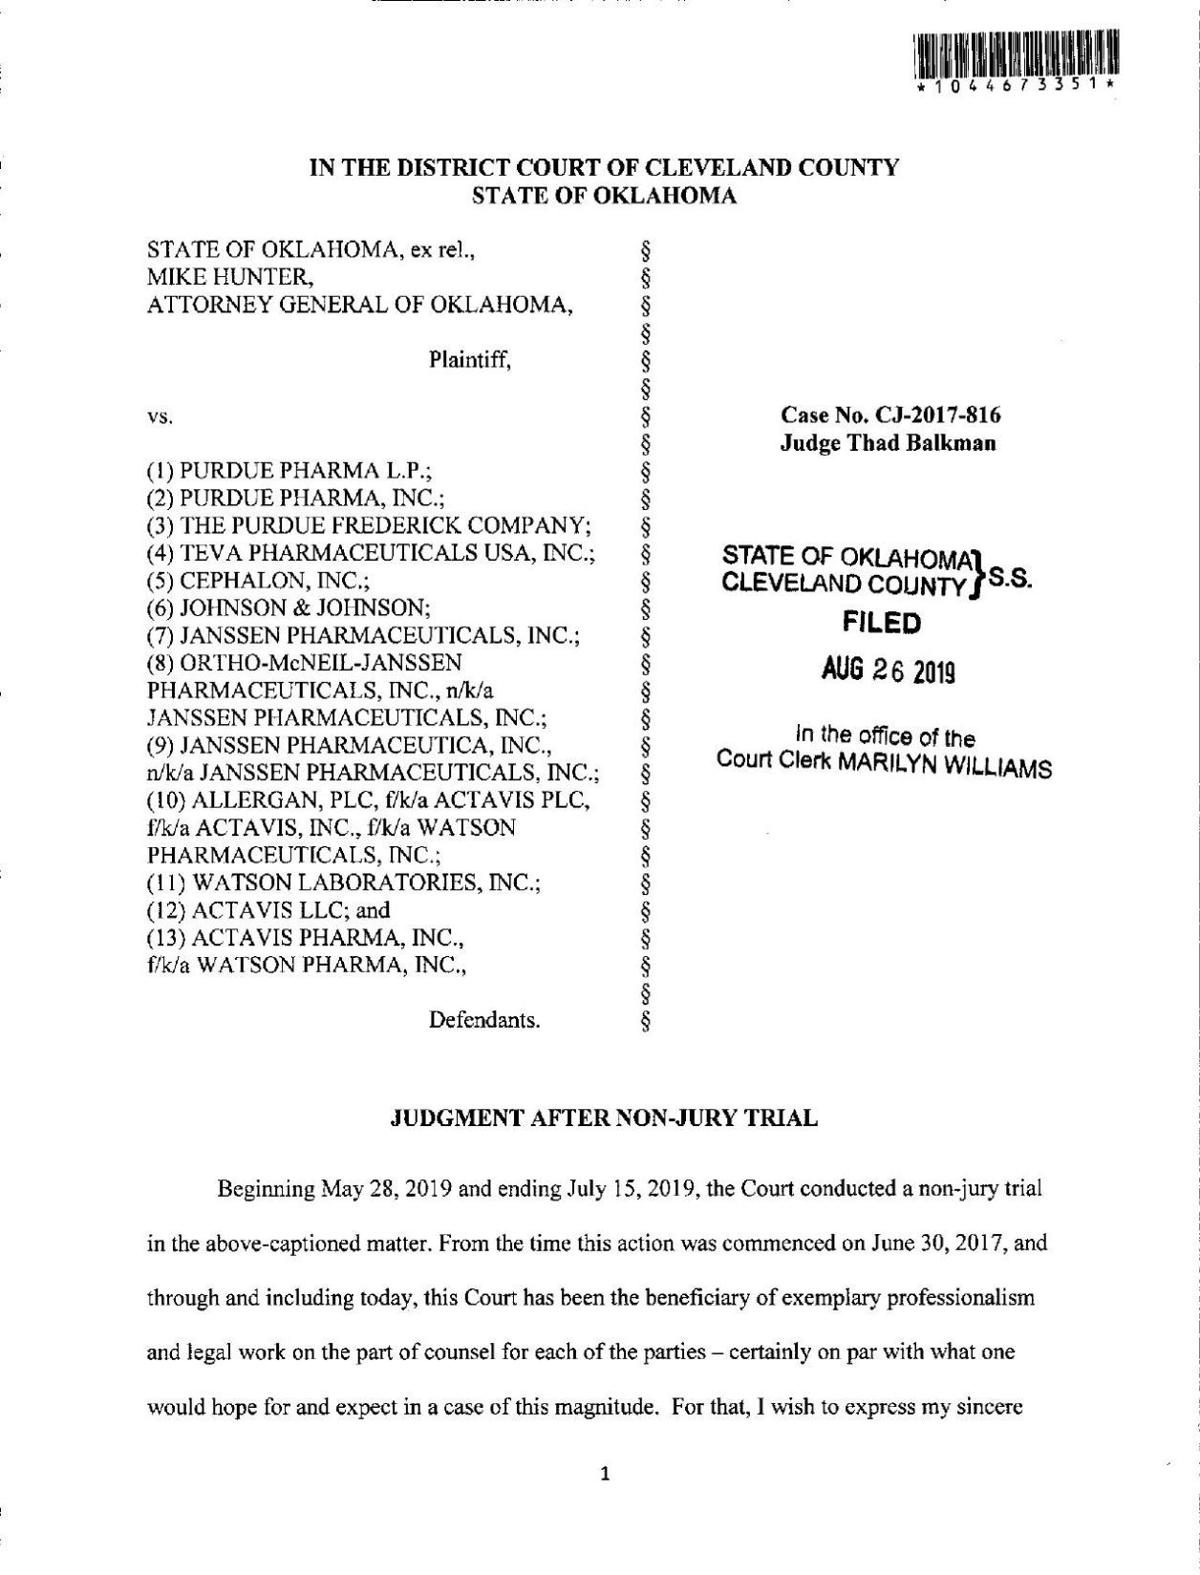 JUDGMENT AFTER NON-JURY TRIAL